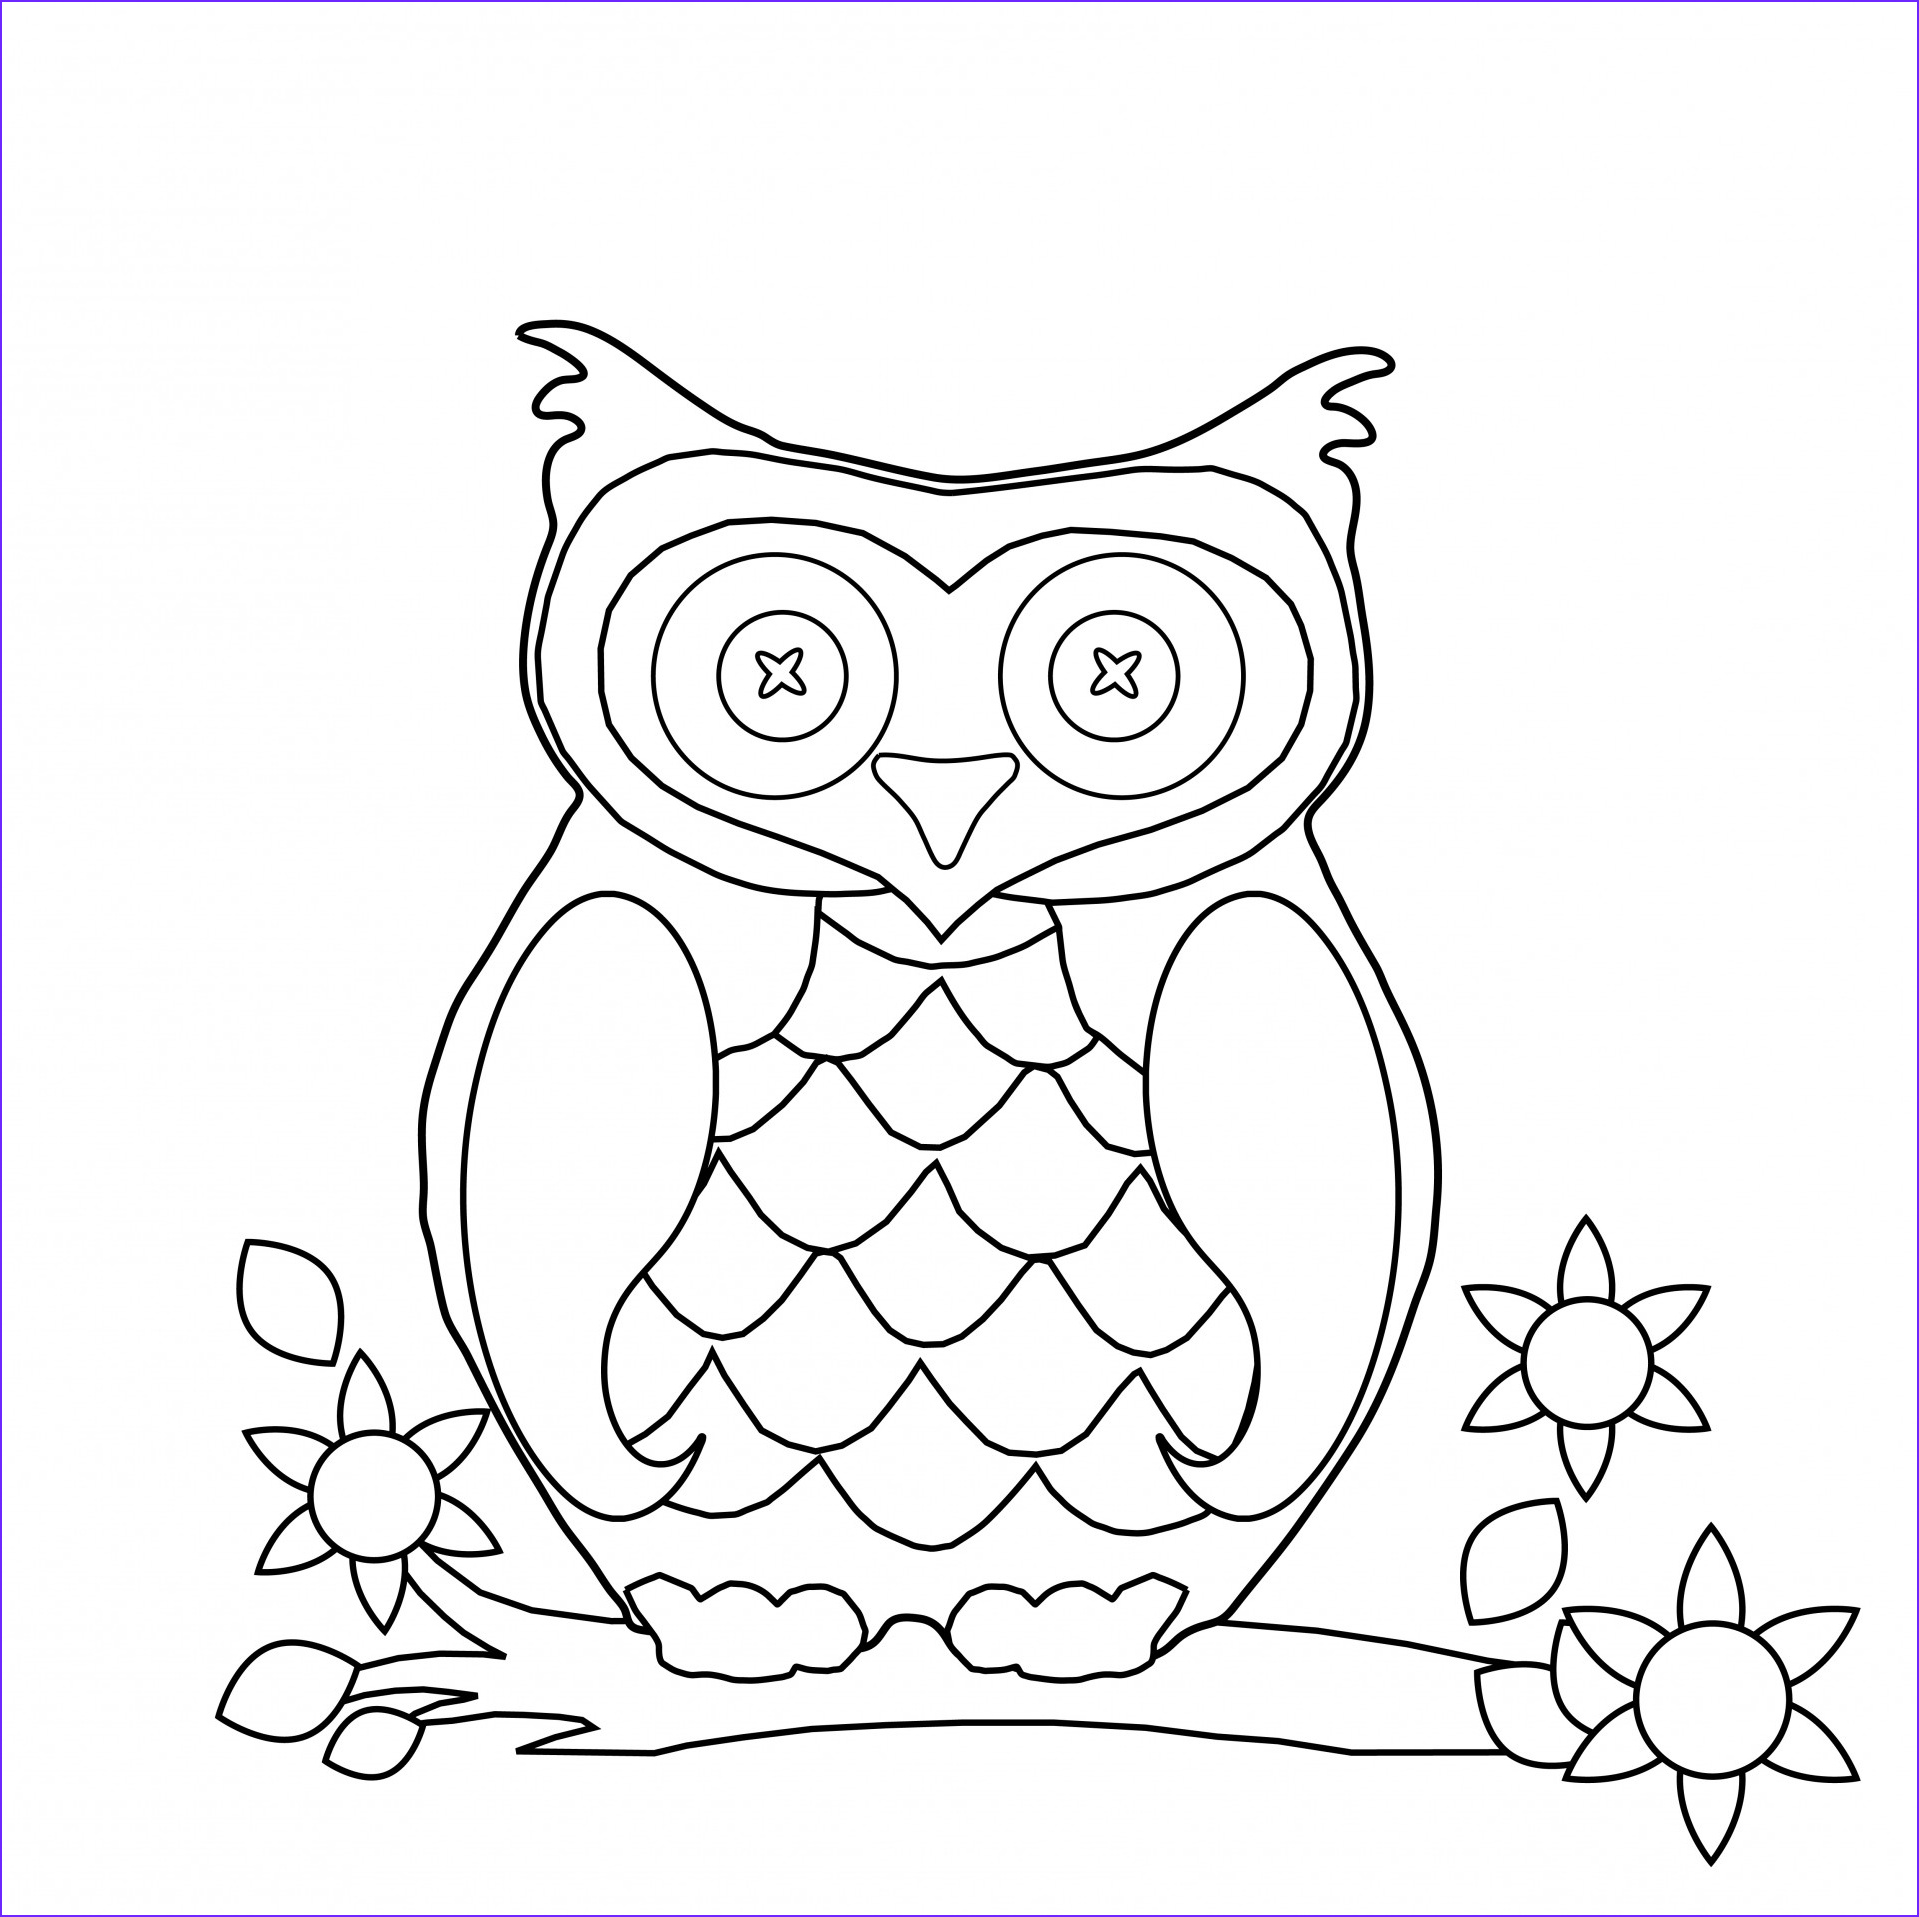 Printables Coloring Pages Inspirational Image Free Printable Abstract Coloring Pages for Adults